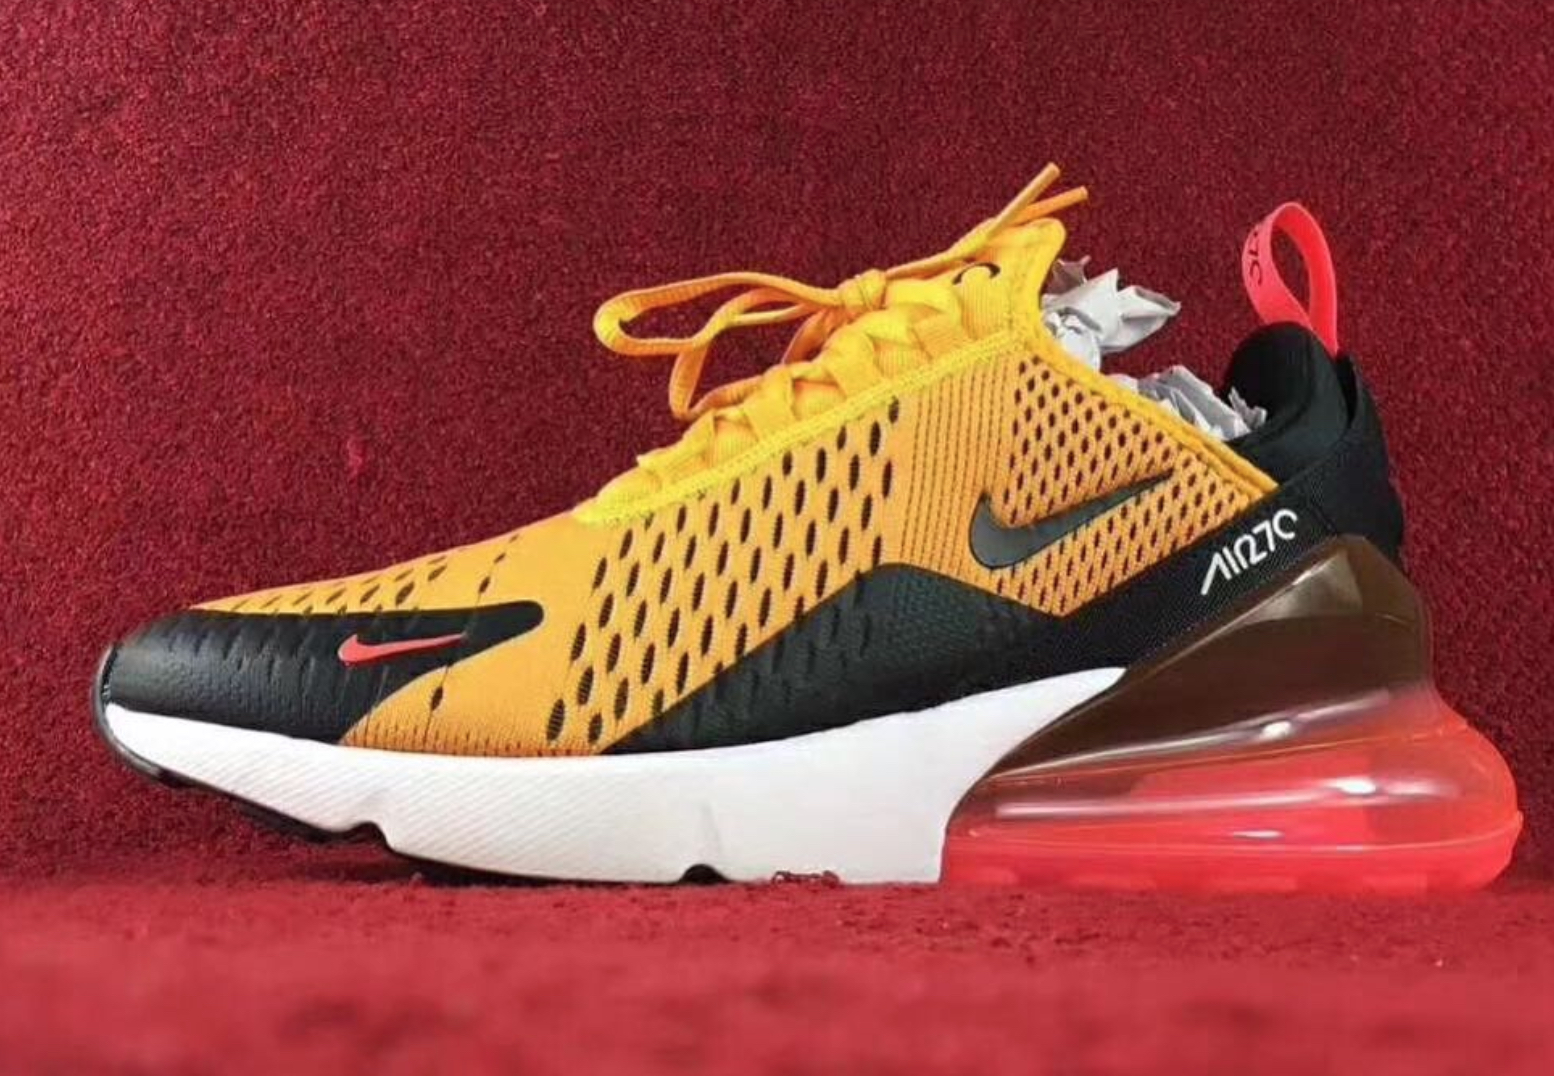 20f2aef9f8 A New Colorway of the Nike Air Max 270 Has Leaked - WearTesters